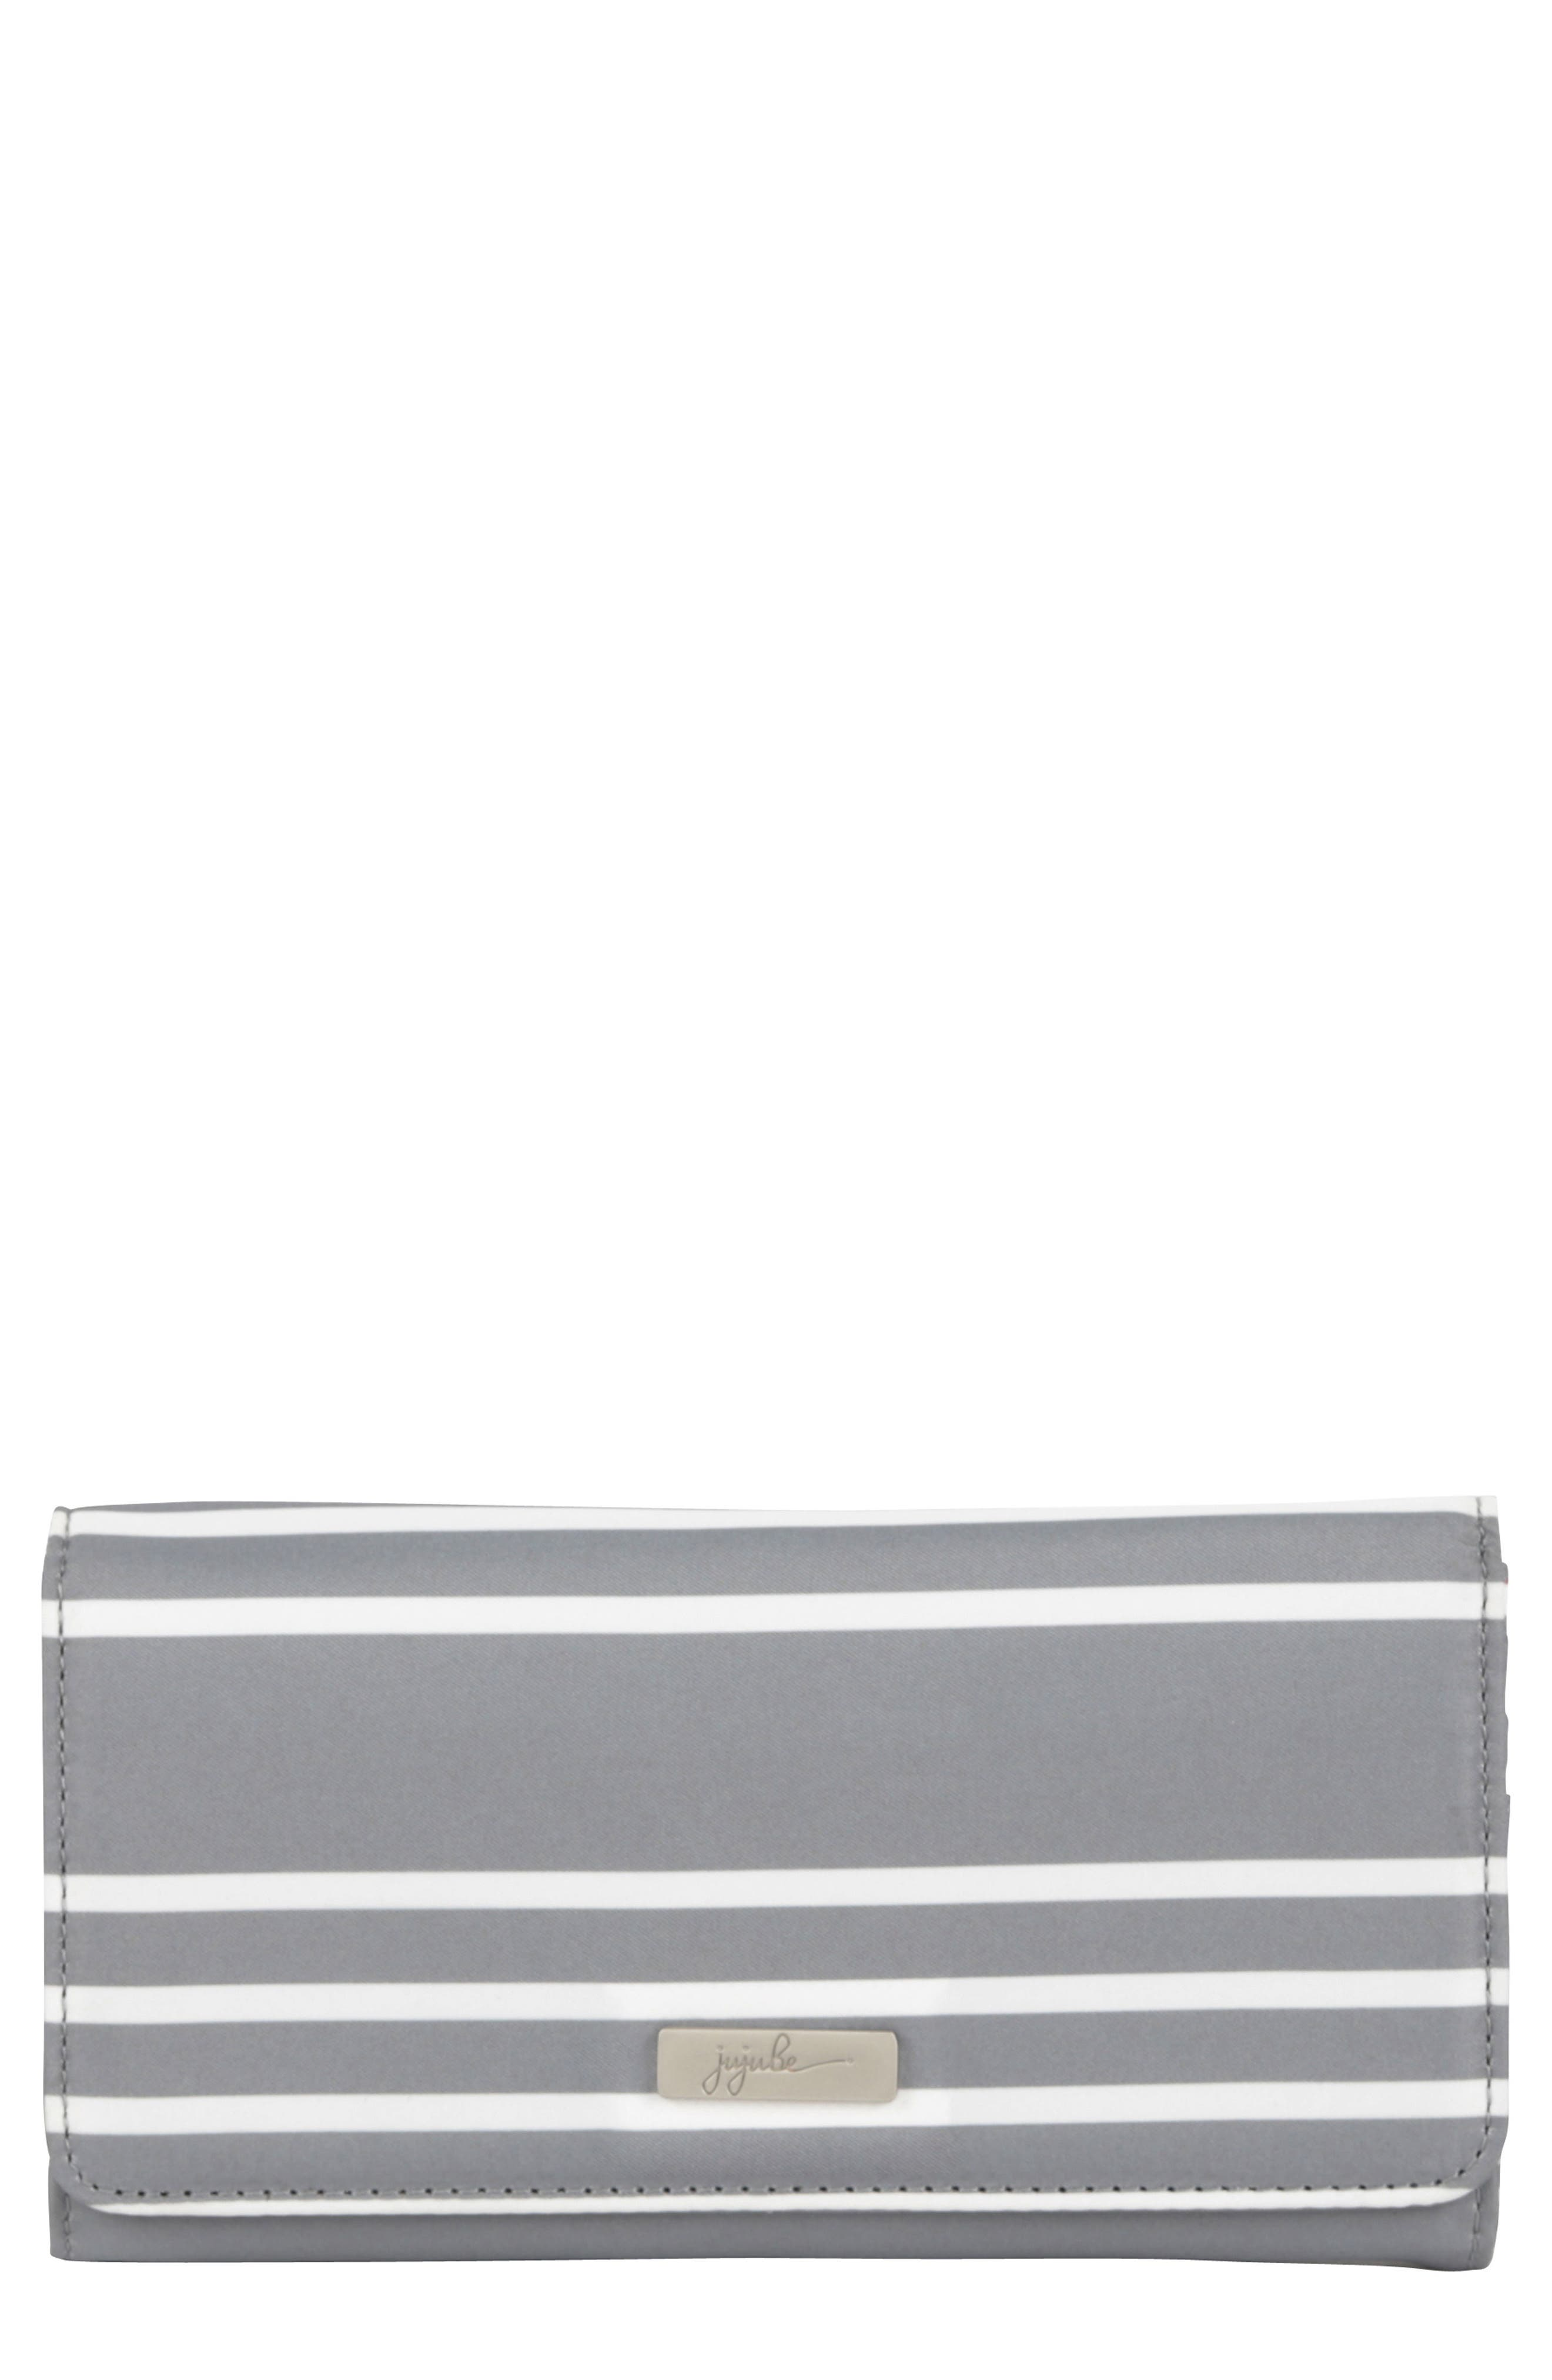 Be Rich - Coastal Collection Trifold Clutch Wallet,                         Main,                         color, 042